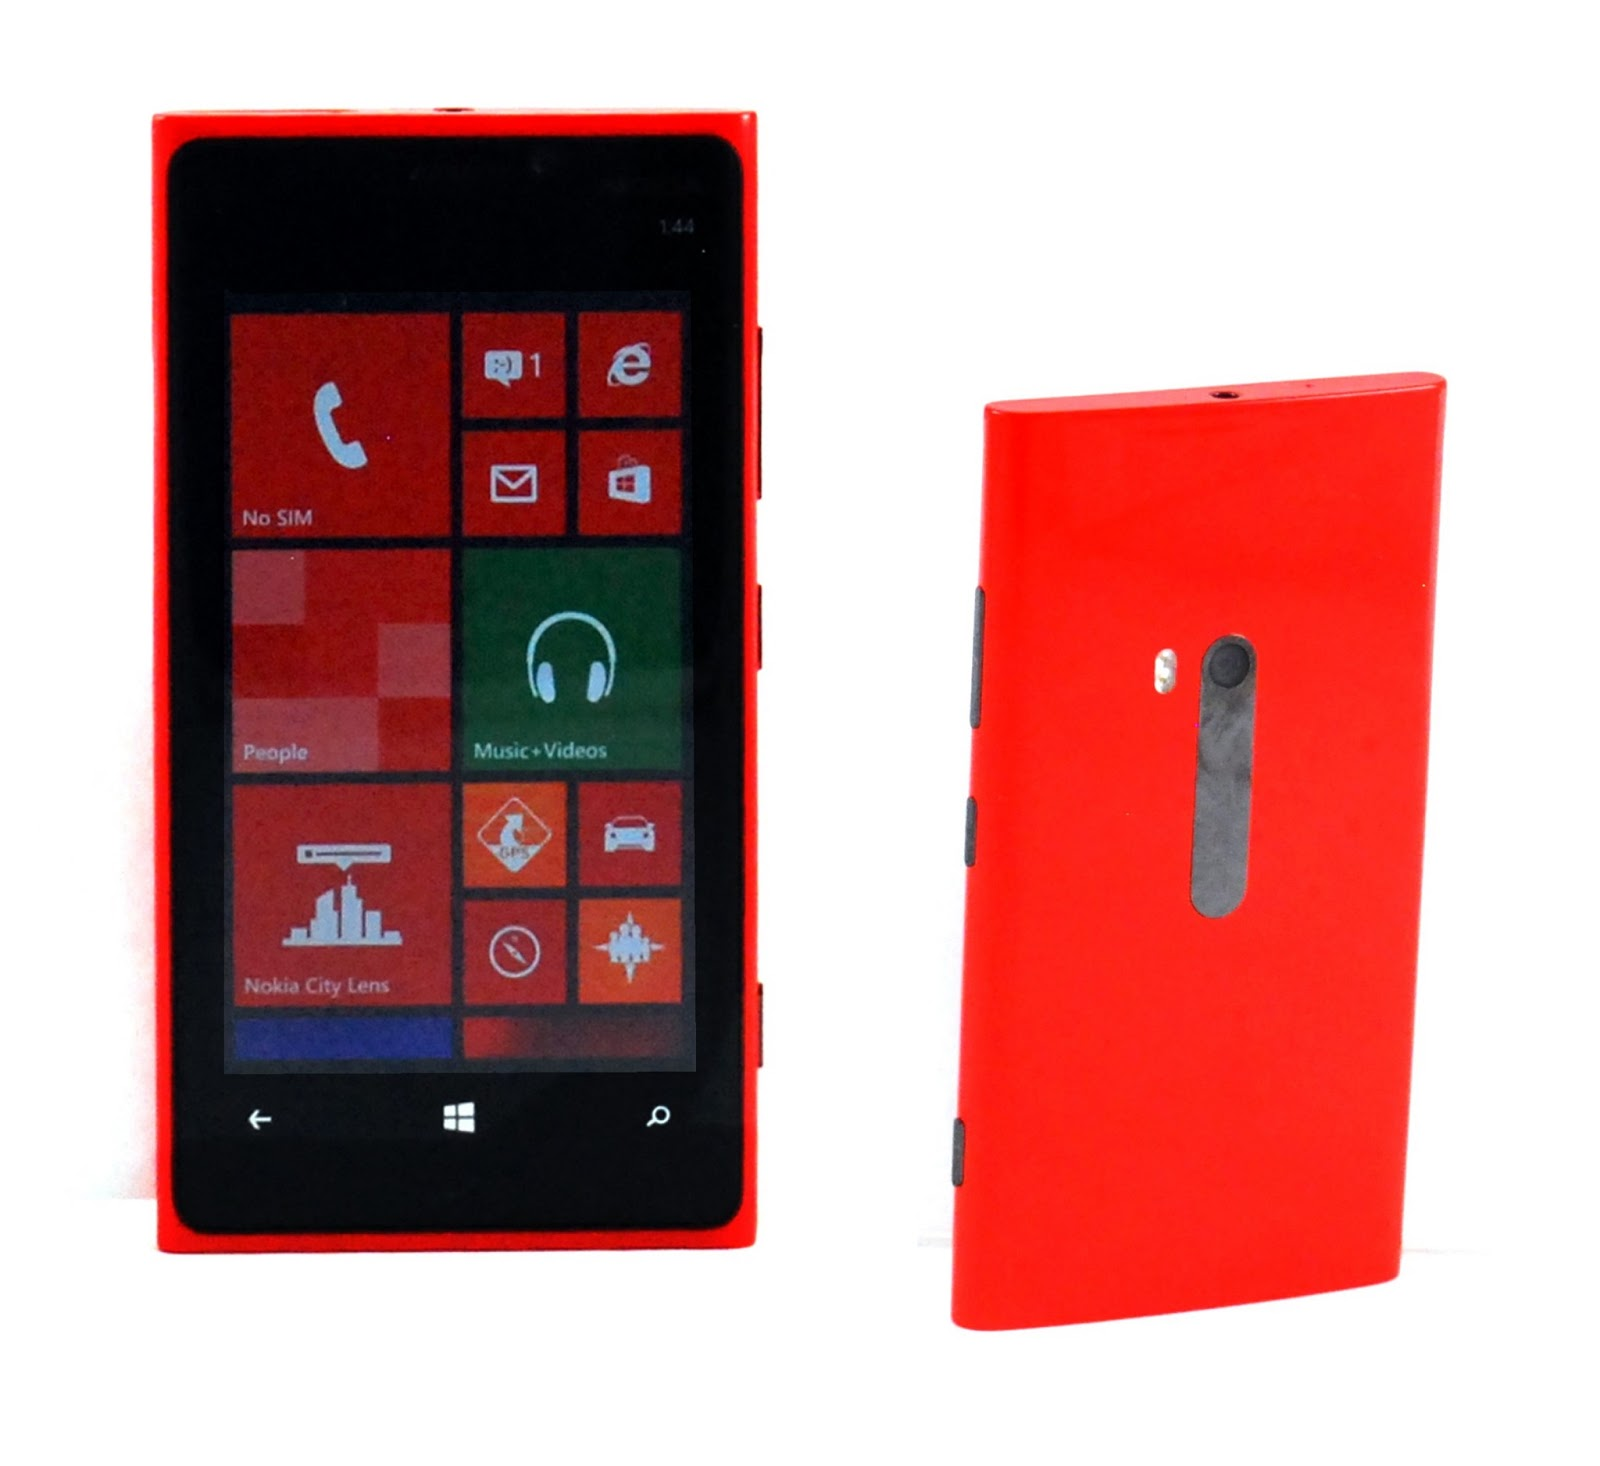 Zhee 39 s cell nokia lumia 920 4g windows phone red at t for Window 4g phone